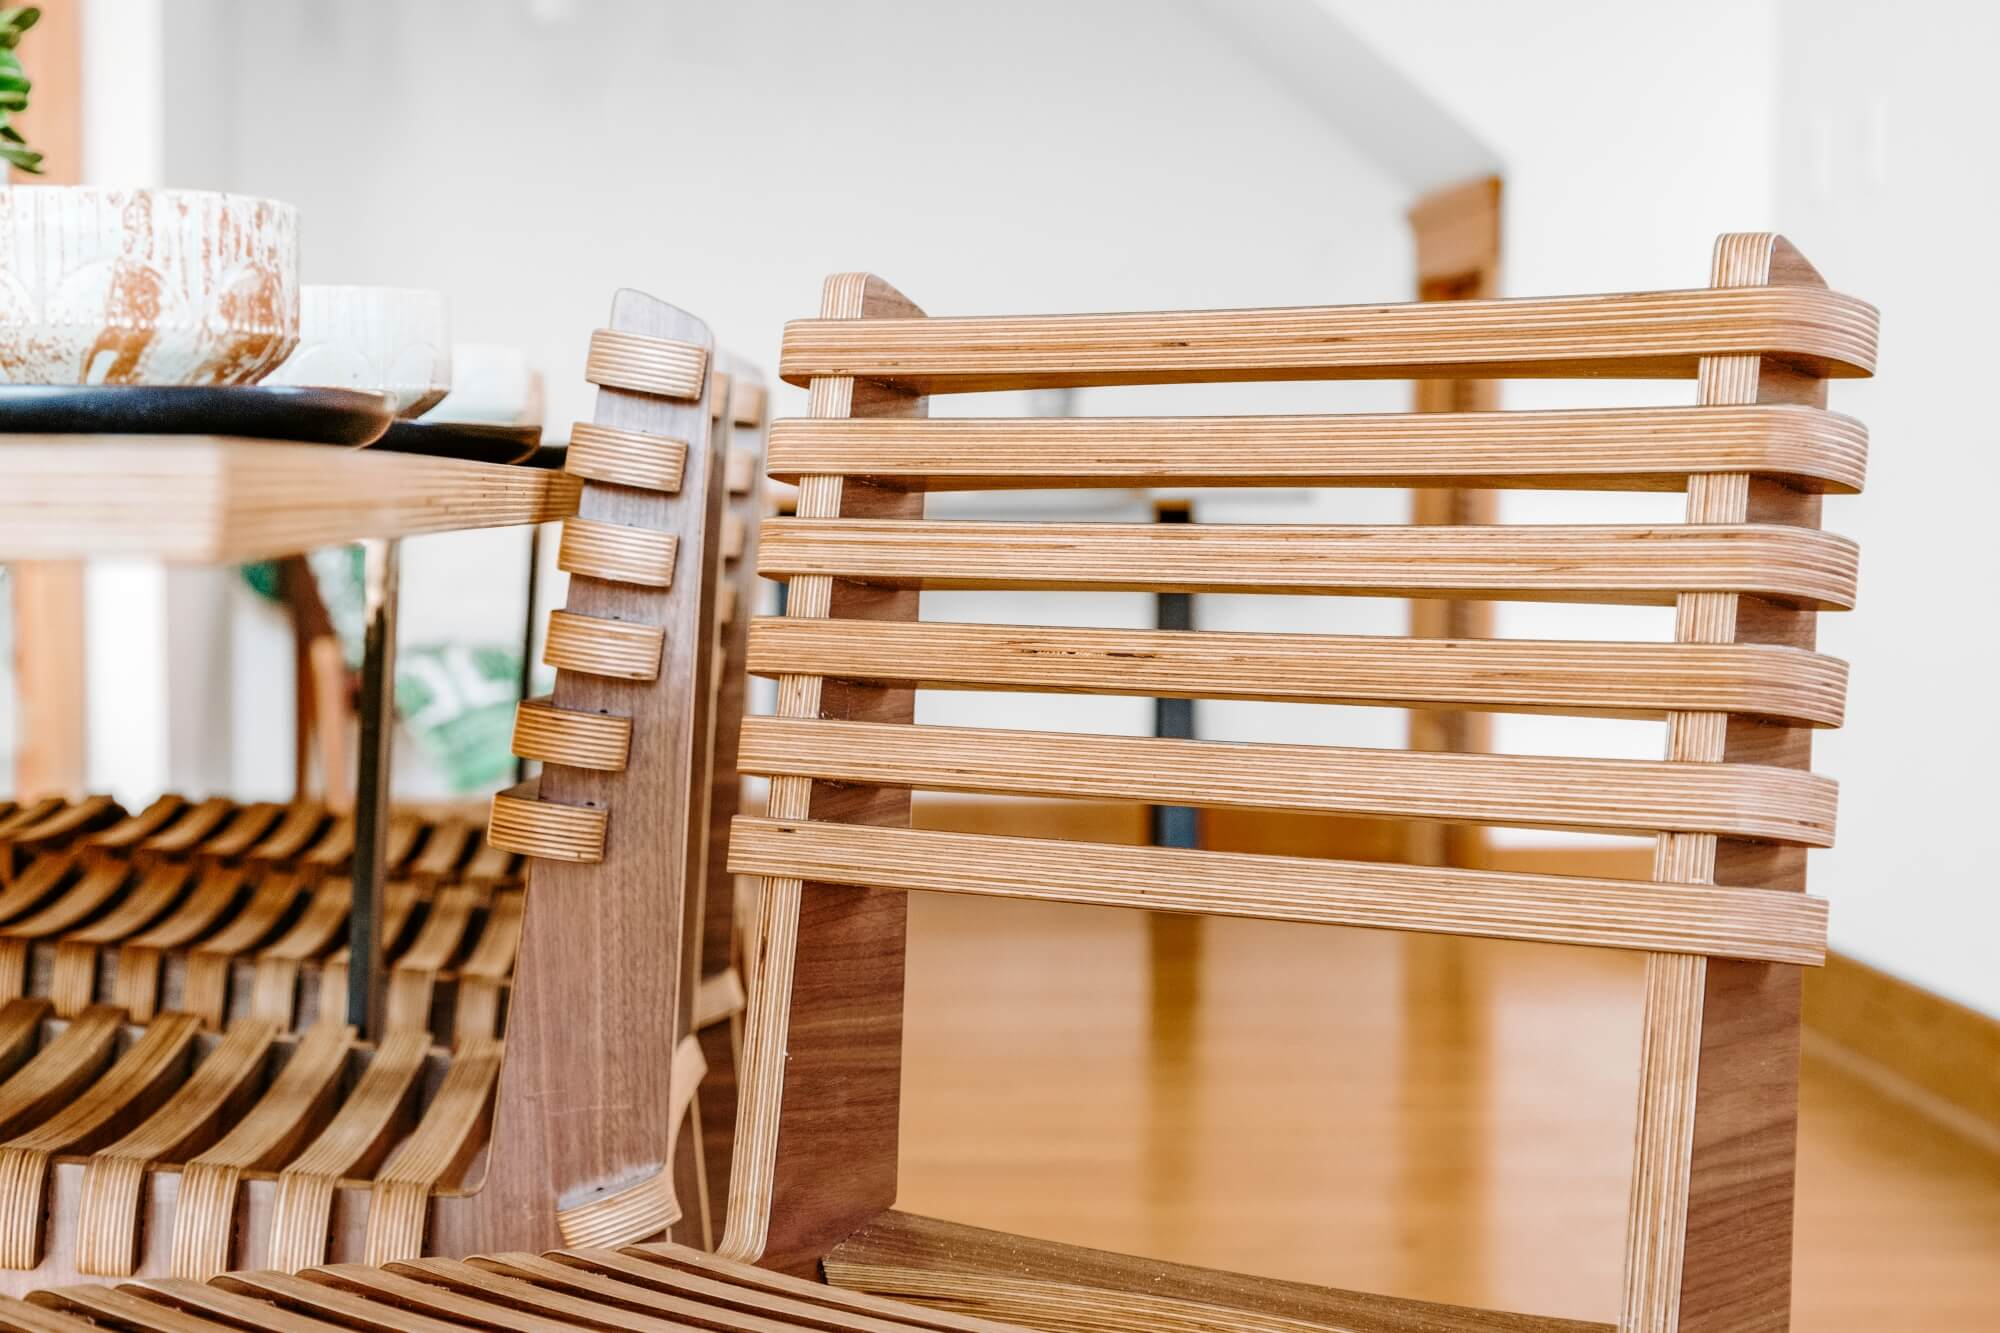 Responsibly sourced wood chairs with environmentally friendly wood finish on them.